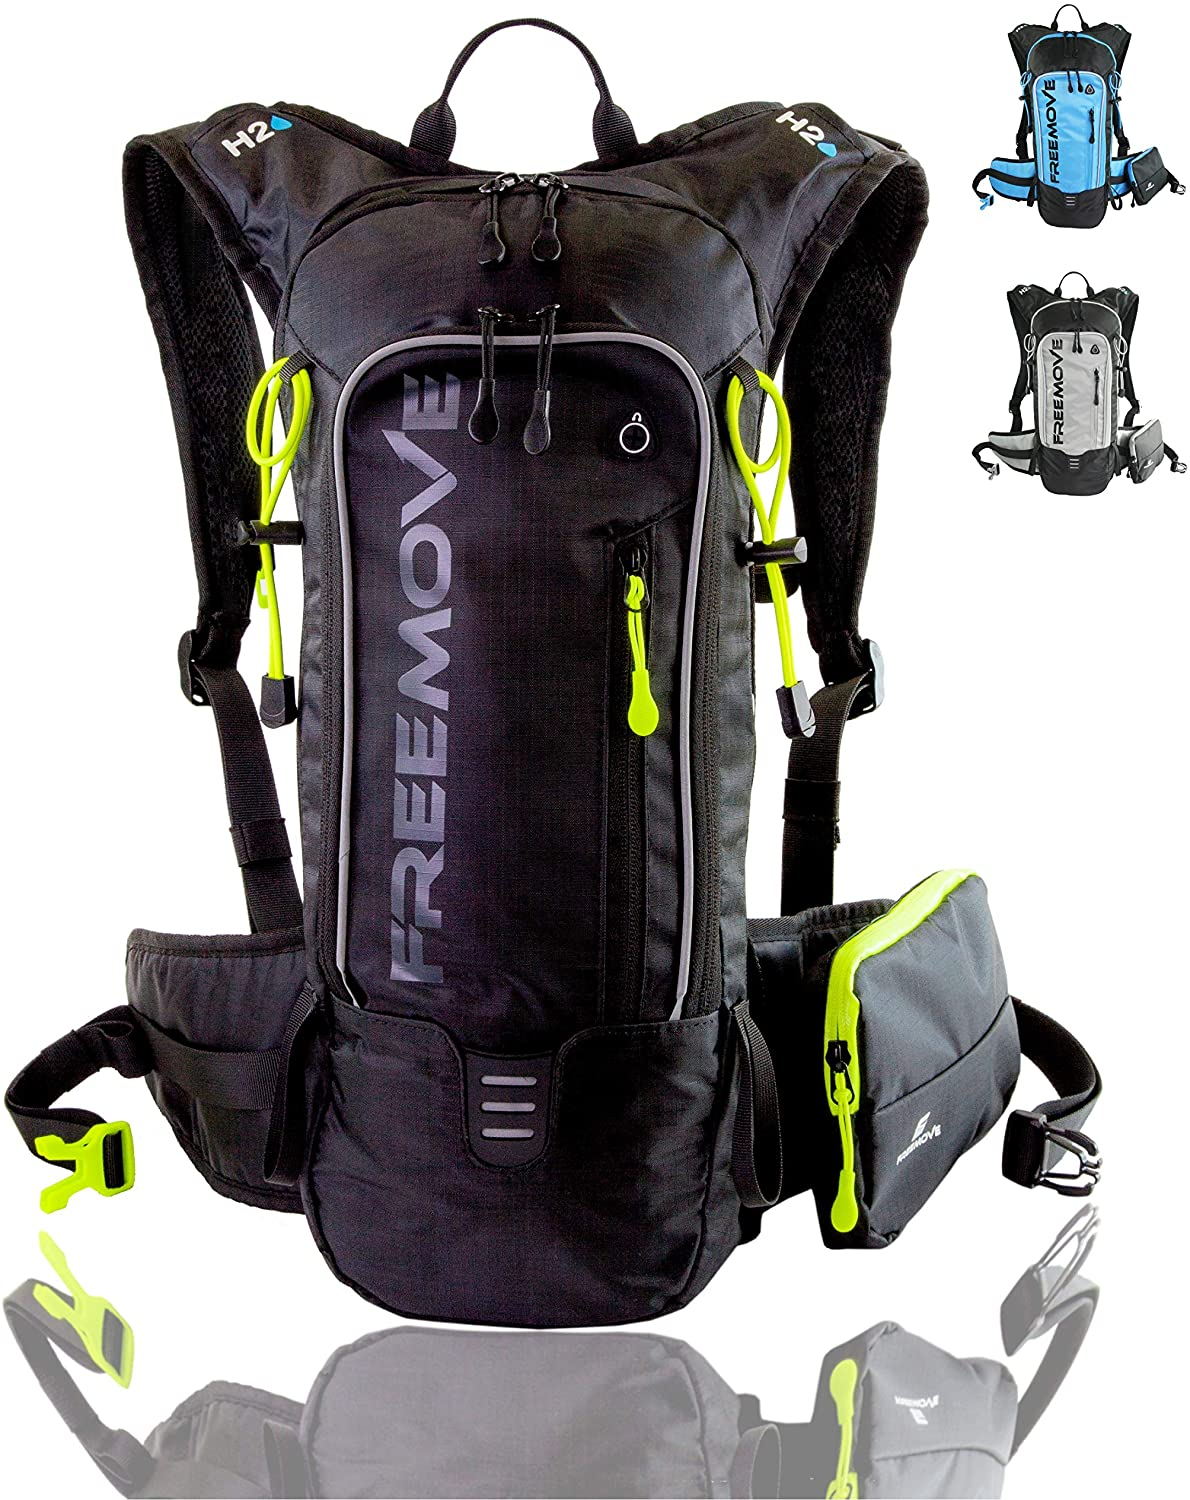 FREEMOVE Hiking Daypack Camelback Backpack with Detachable Phone Pocket, 10L Capacity, Many Compartments, Durable - Ideal as Hydration Backpack for Hiking, Running, MTB Cycling - Bladder NOT Included